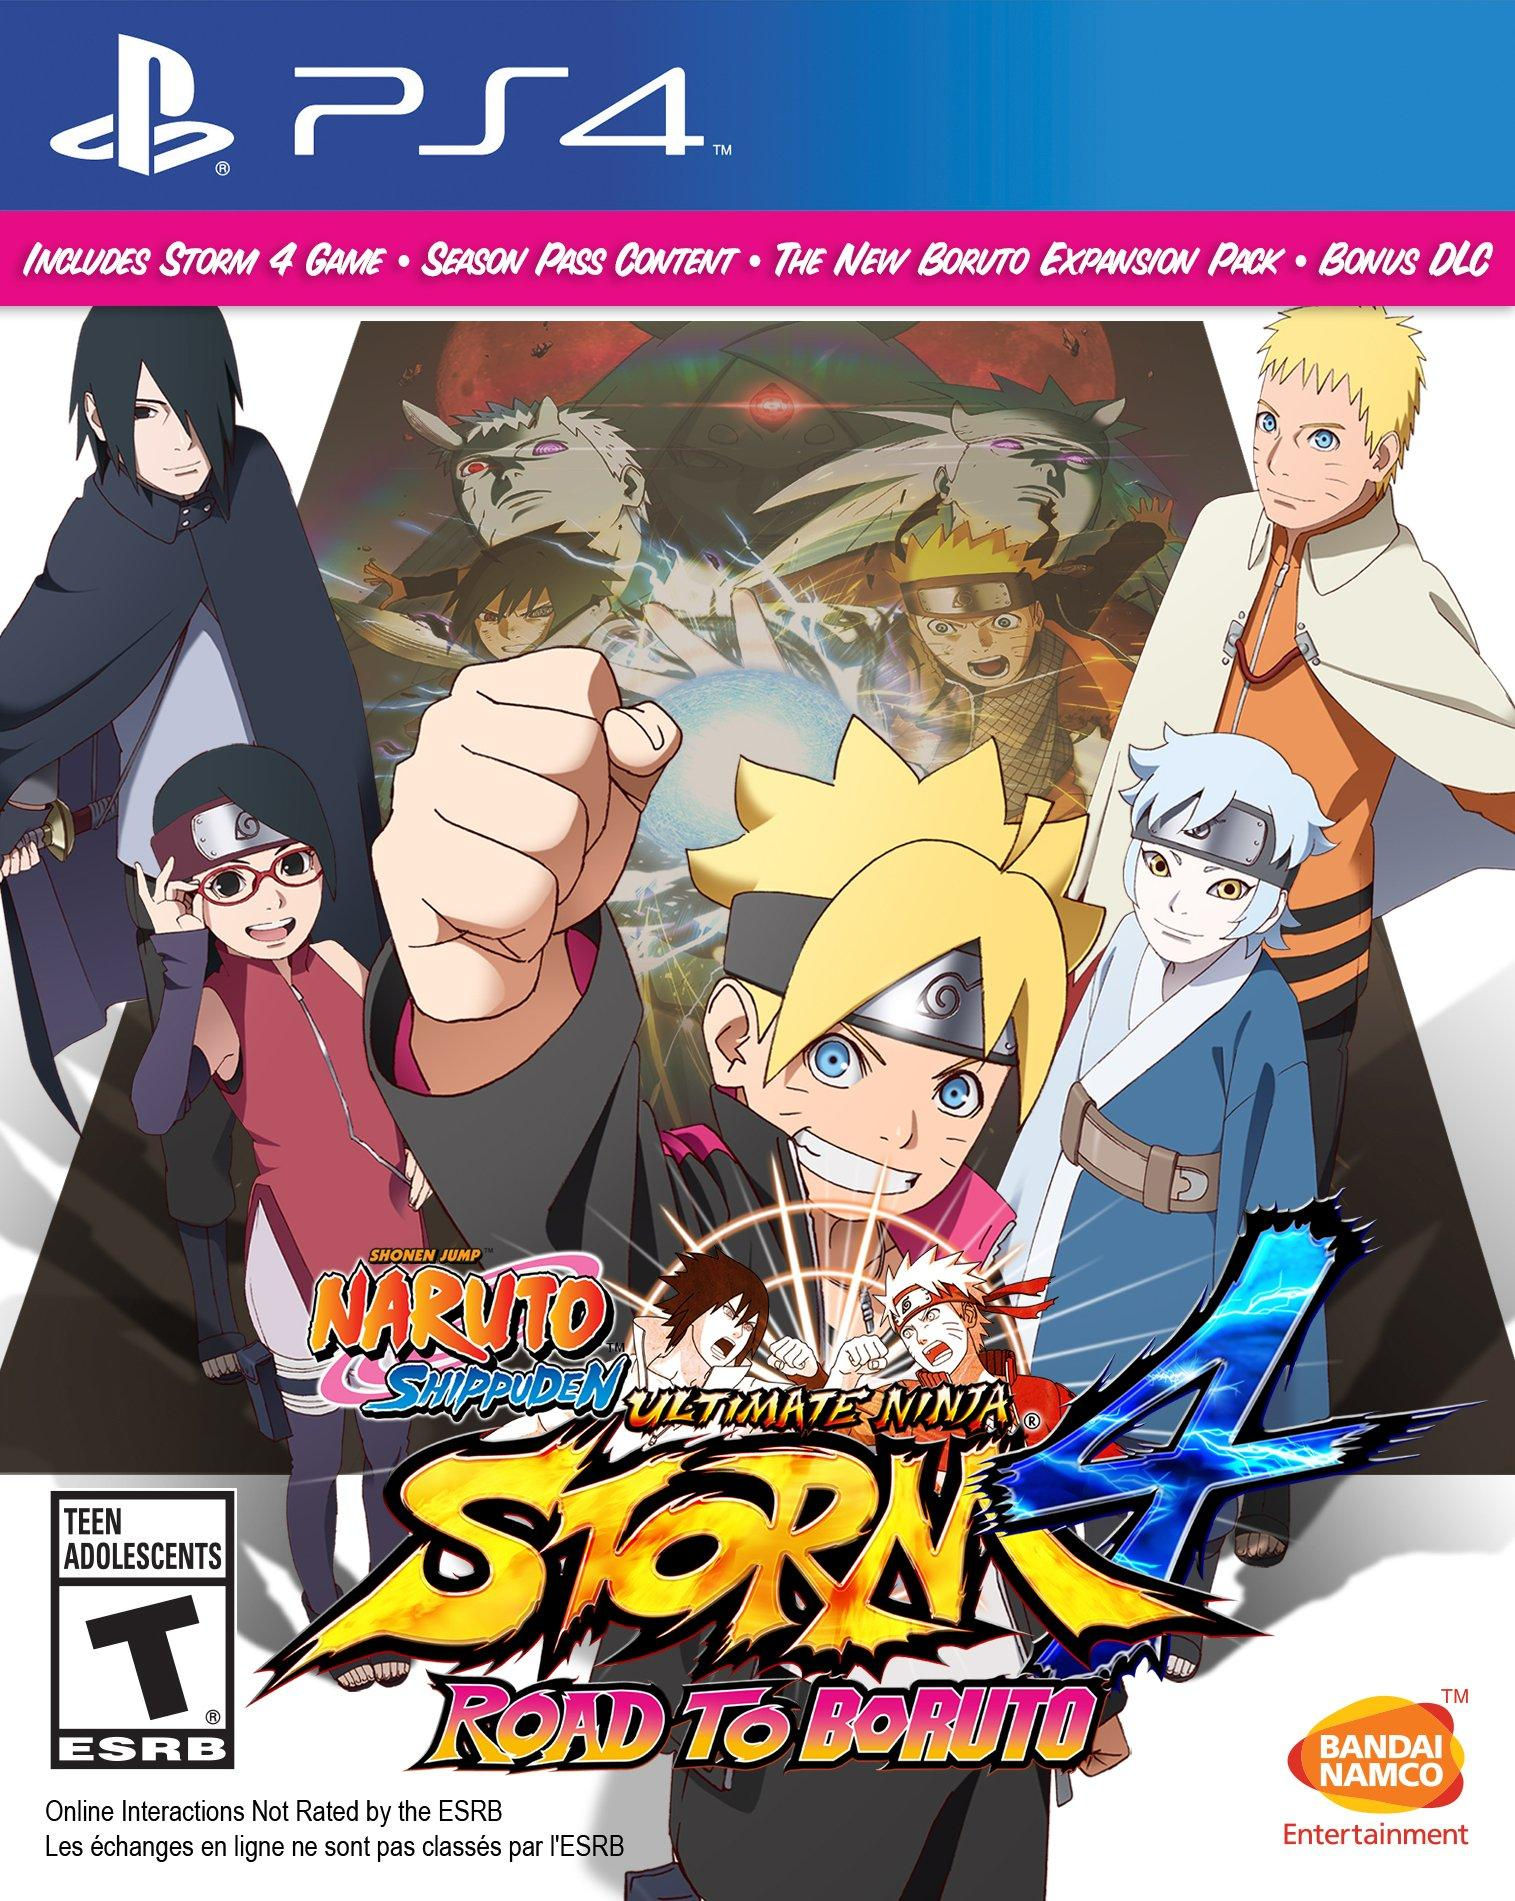 Naruto Ultimate Ninja Storm 4 Ps4 : naruto, ultimate, ninja, storm, Naruto, Shippuden, Ultimate, Ninja, Storm, Boruto, PlayStation, GameStop